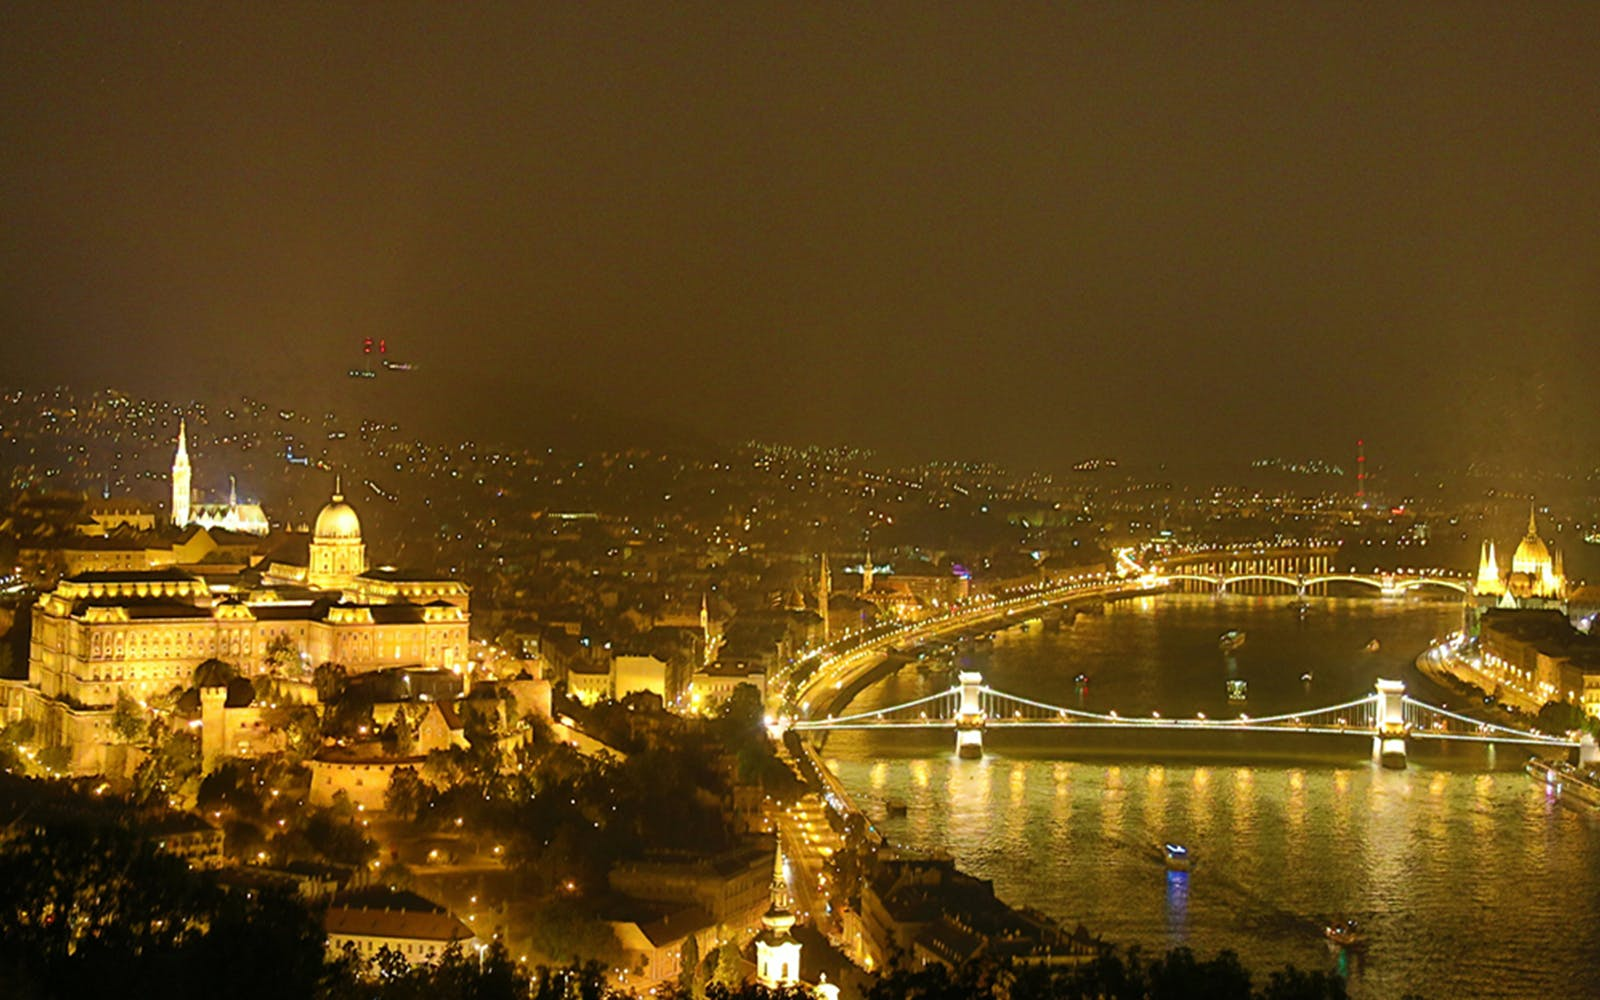 Budapest by Night - Guided Tour